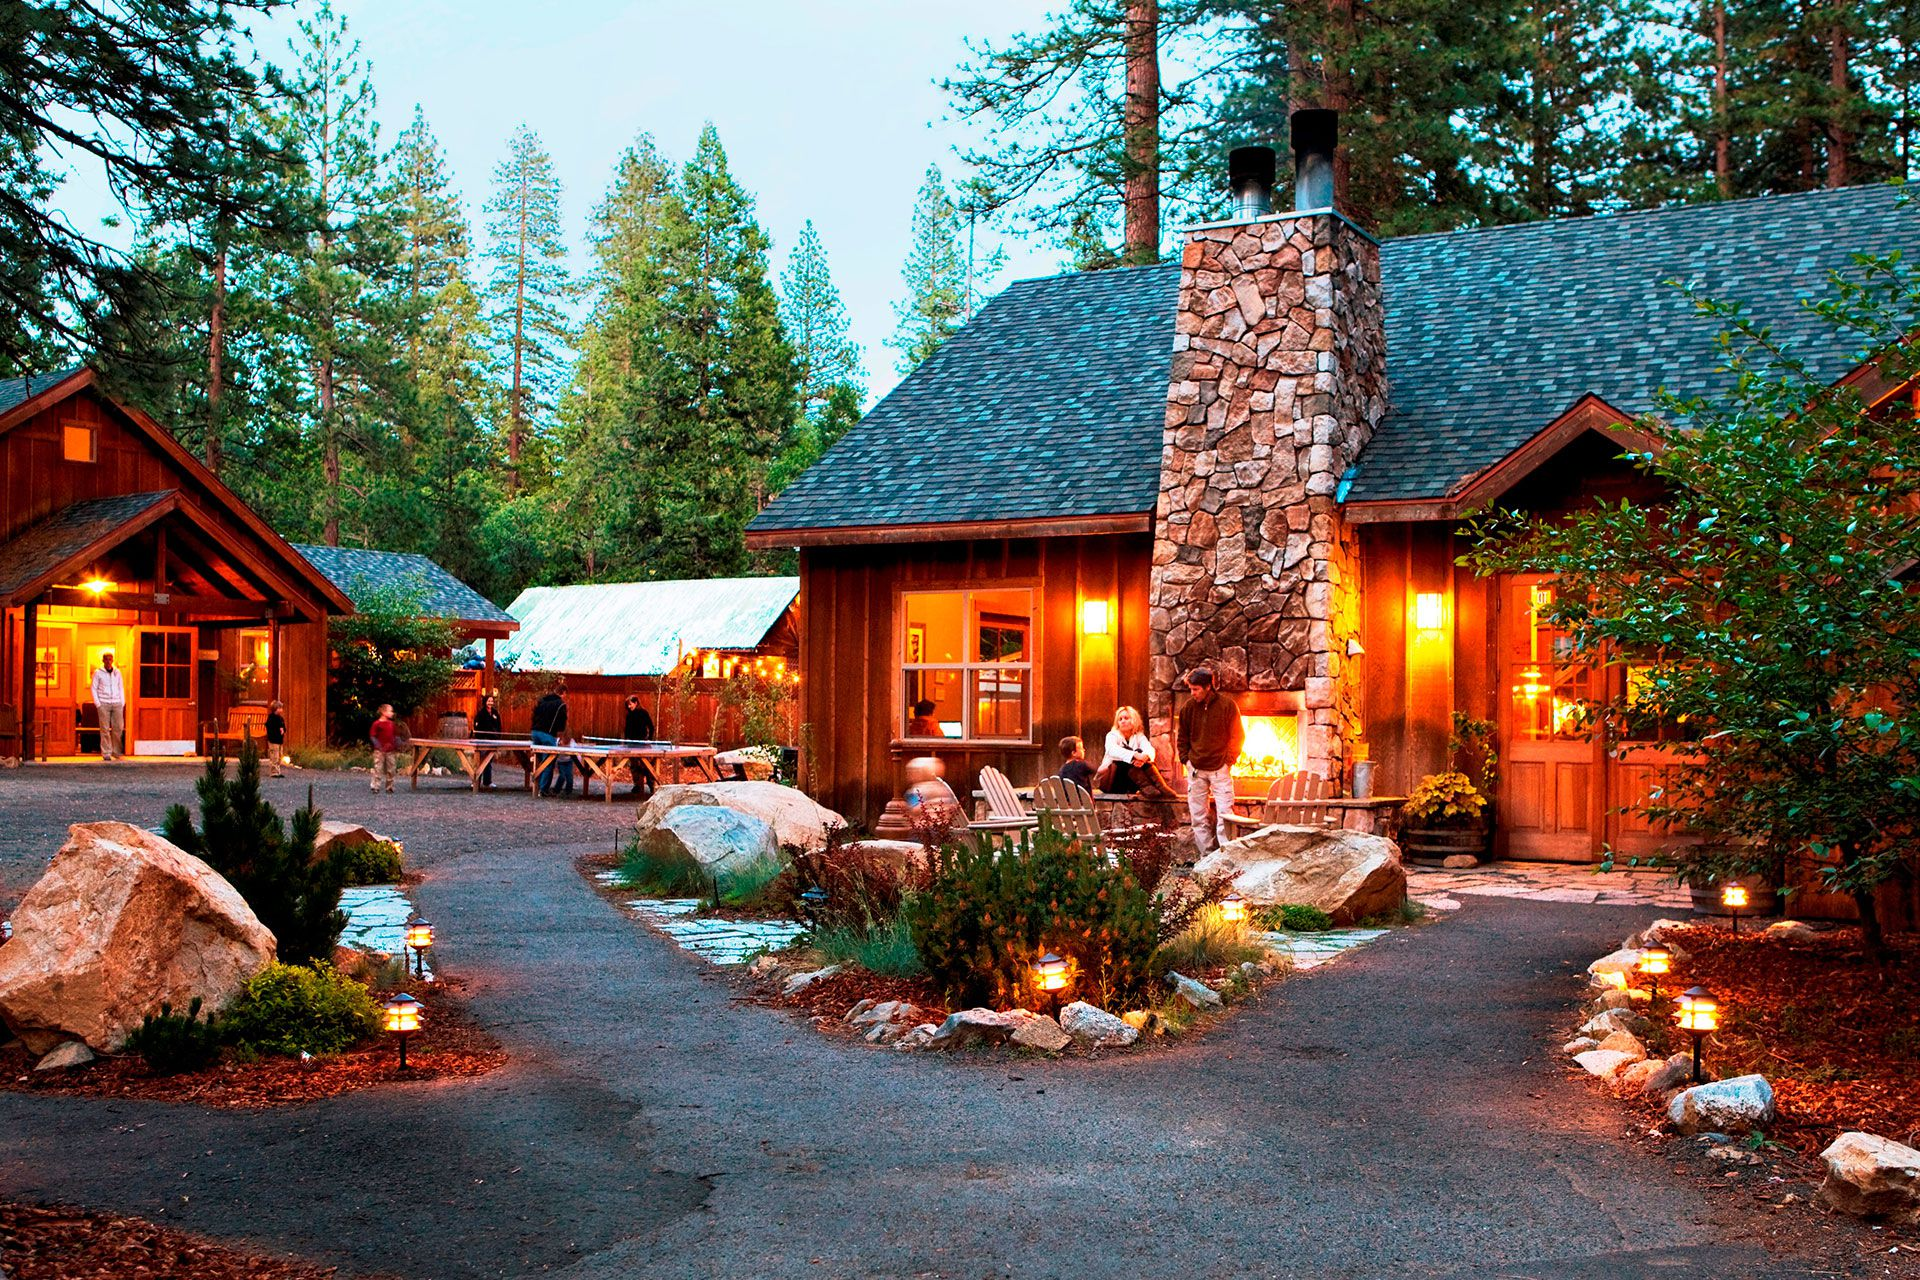 Best Overall Evergreen Lodge